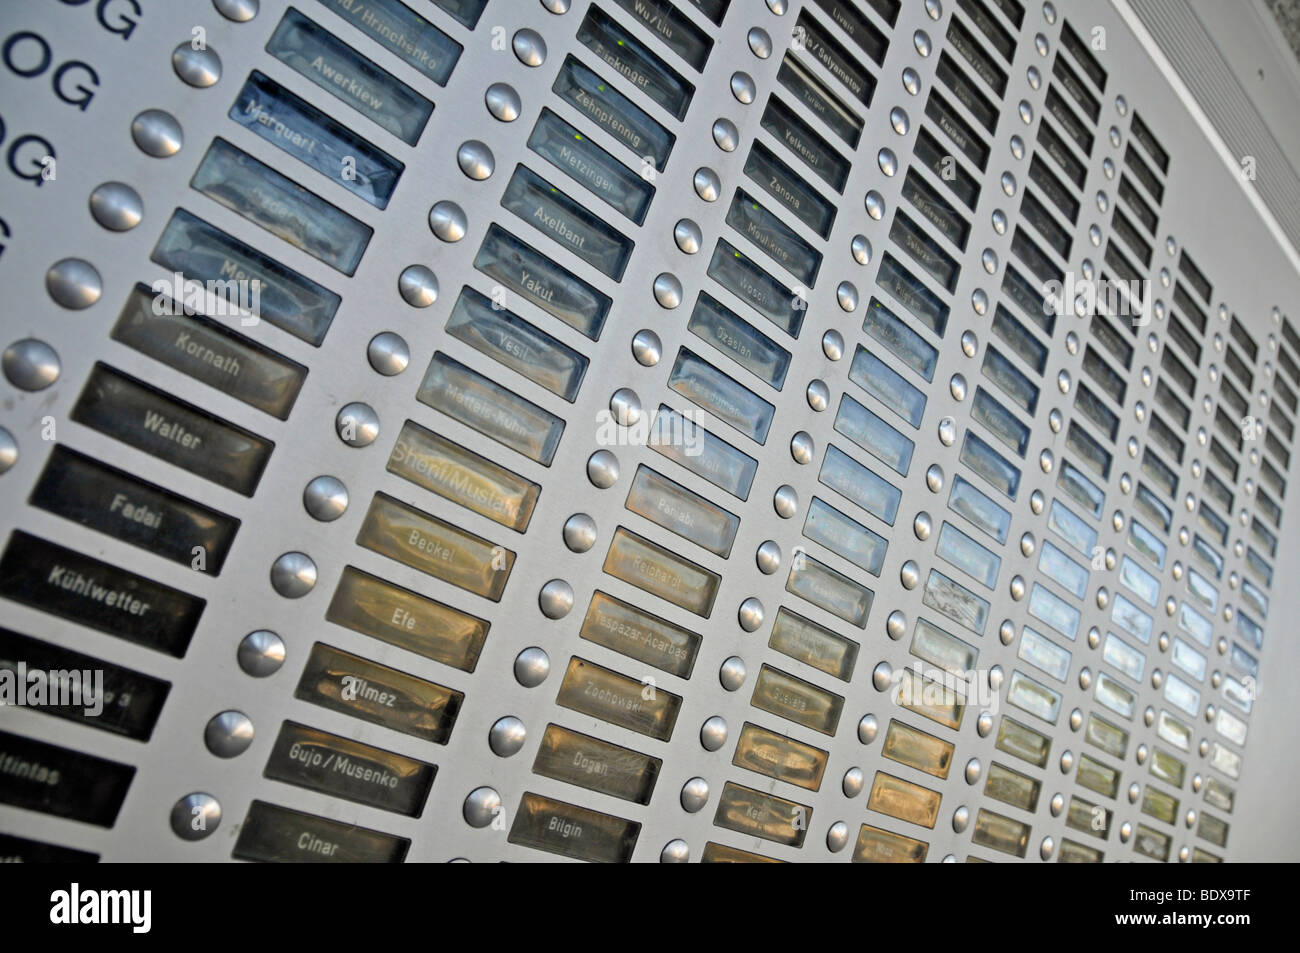 Doorbell panel of a high-rise apartment building, satellite town of Chorweiler in Cologne, North Rhine-Westphalia, - Stock Image